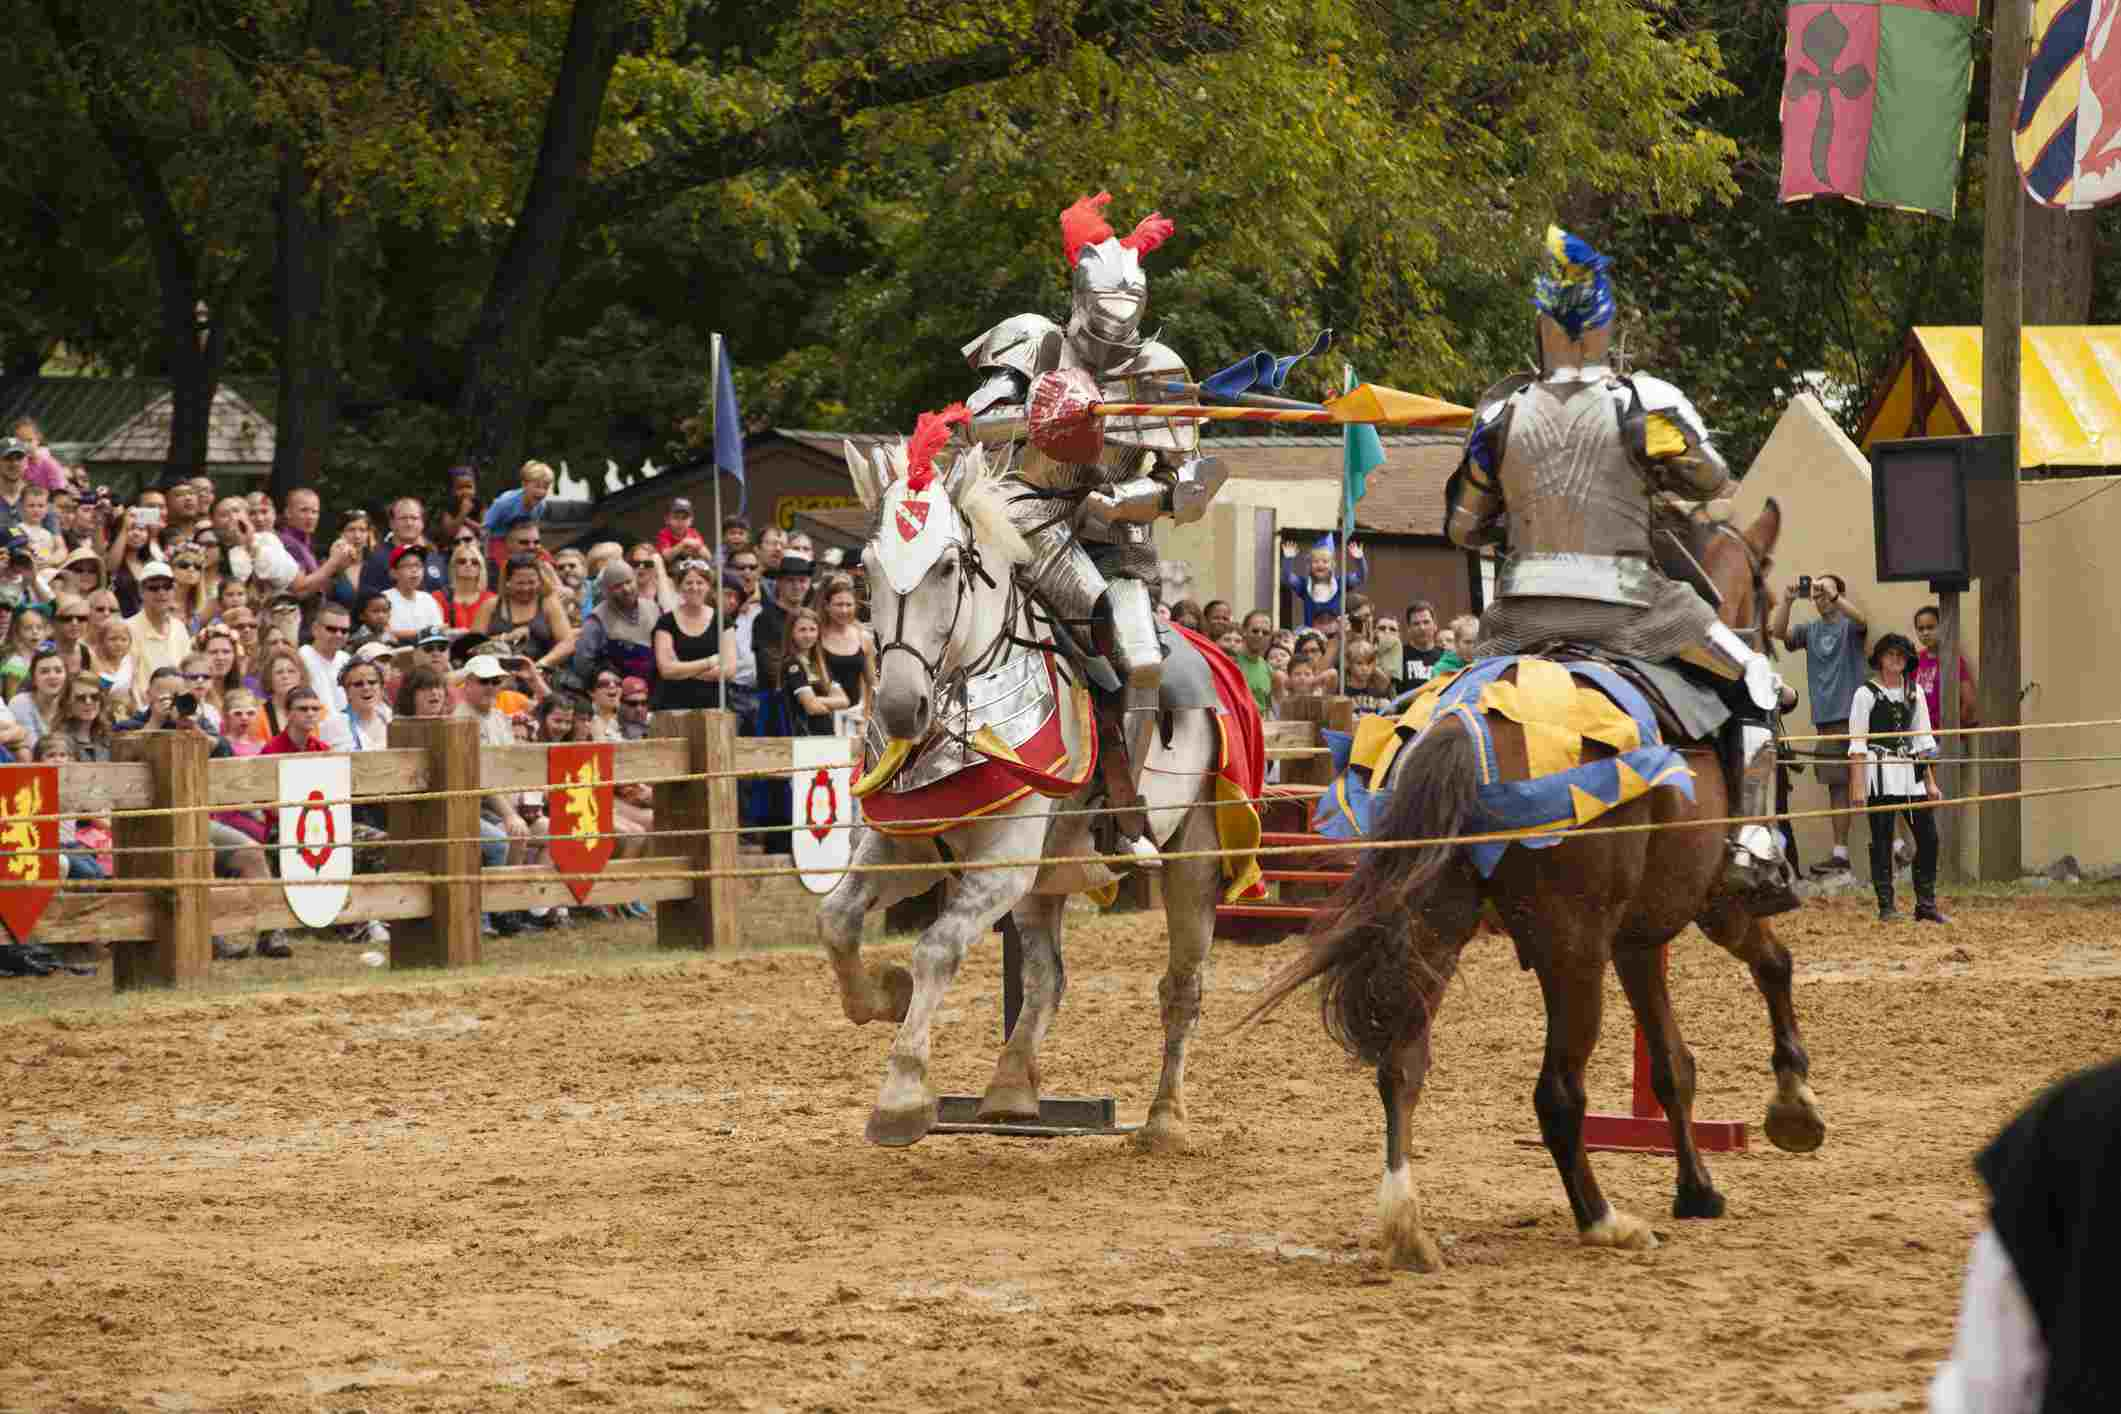 Jousters perform at the Maryland Renaissance Festival